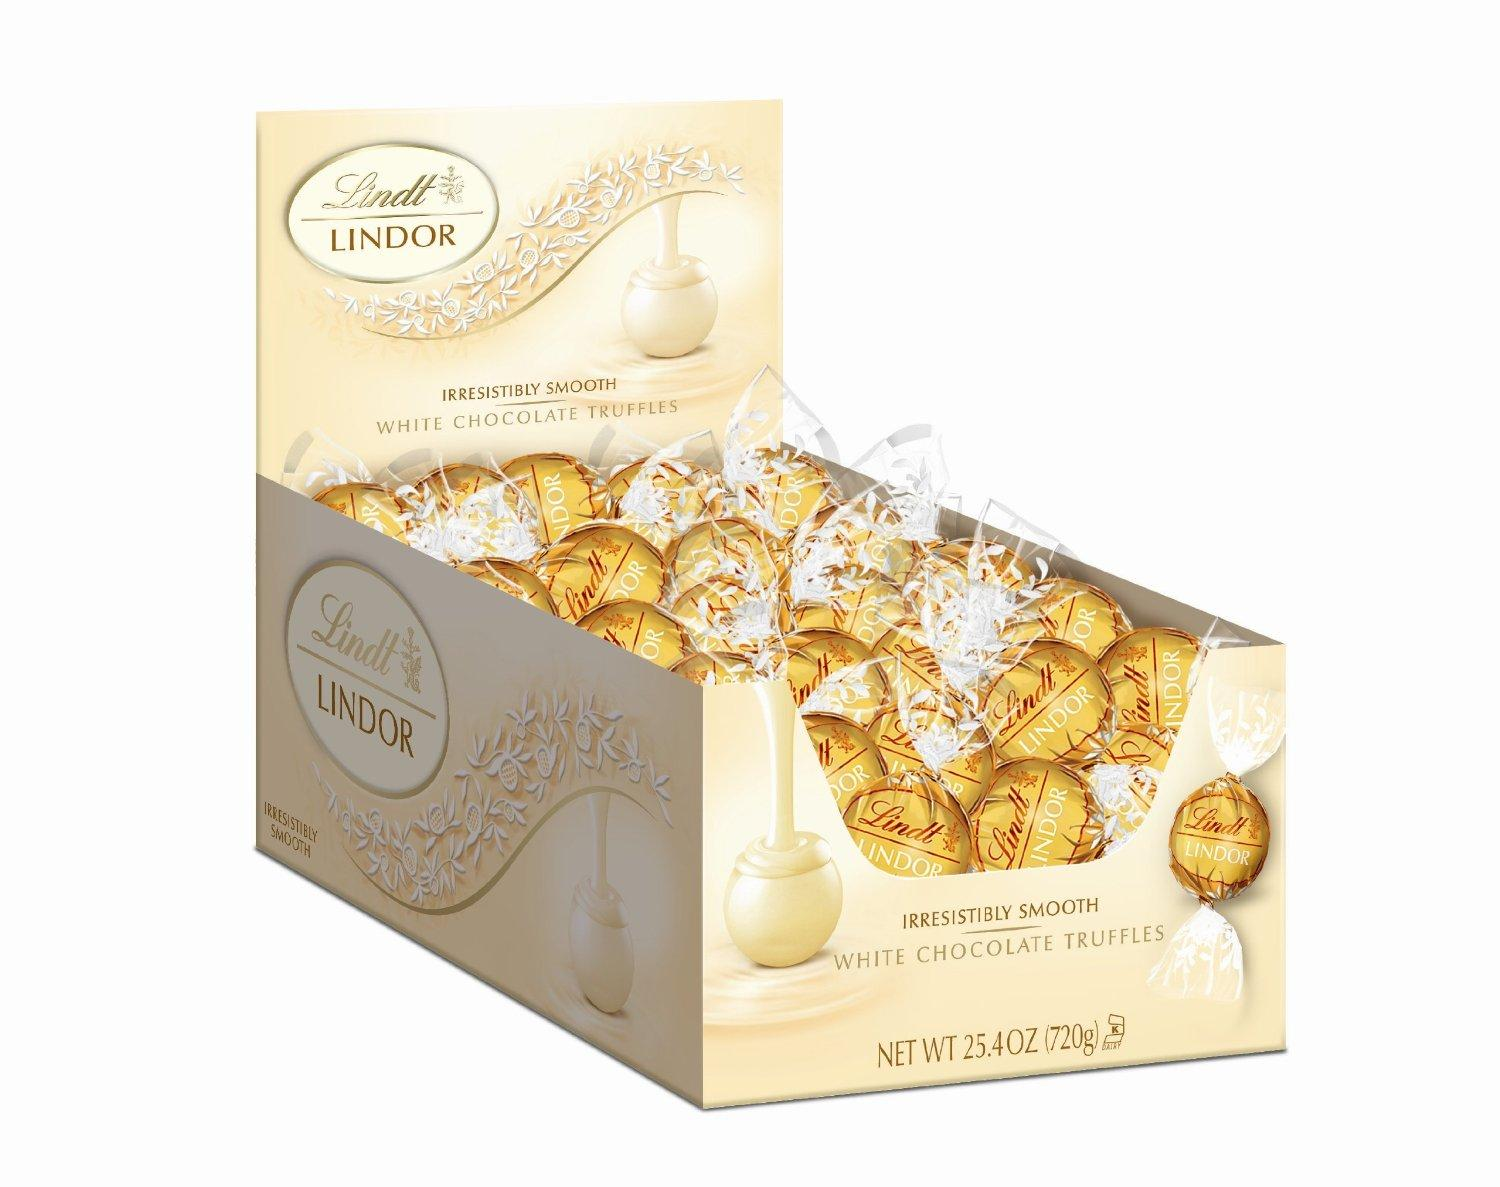 Lindt LINDOR White Chocolate Truffles, 120 Count Box